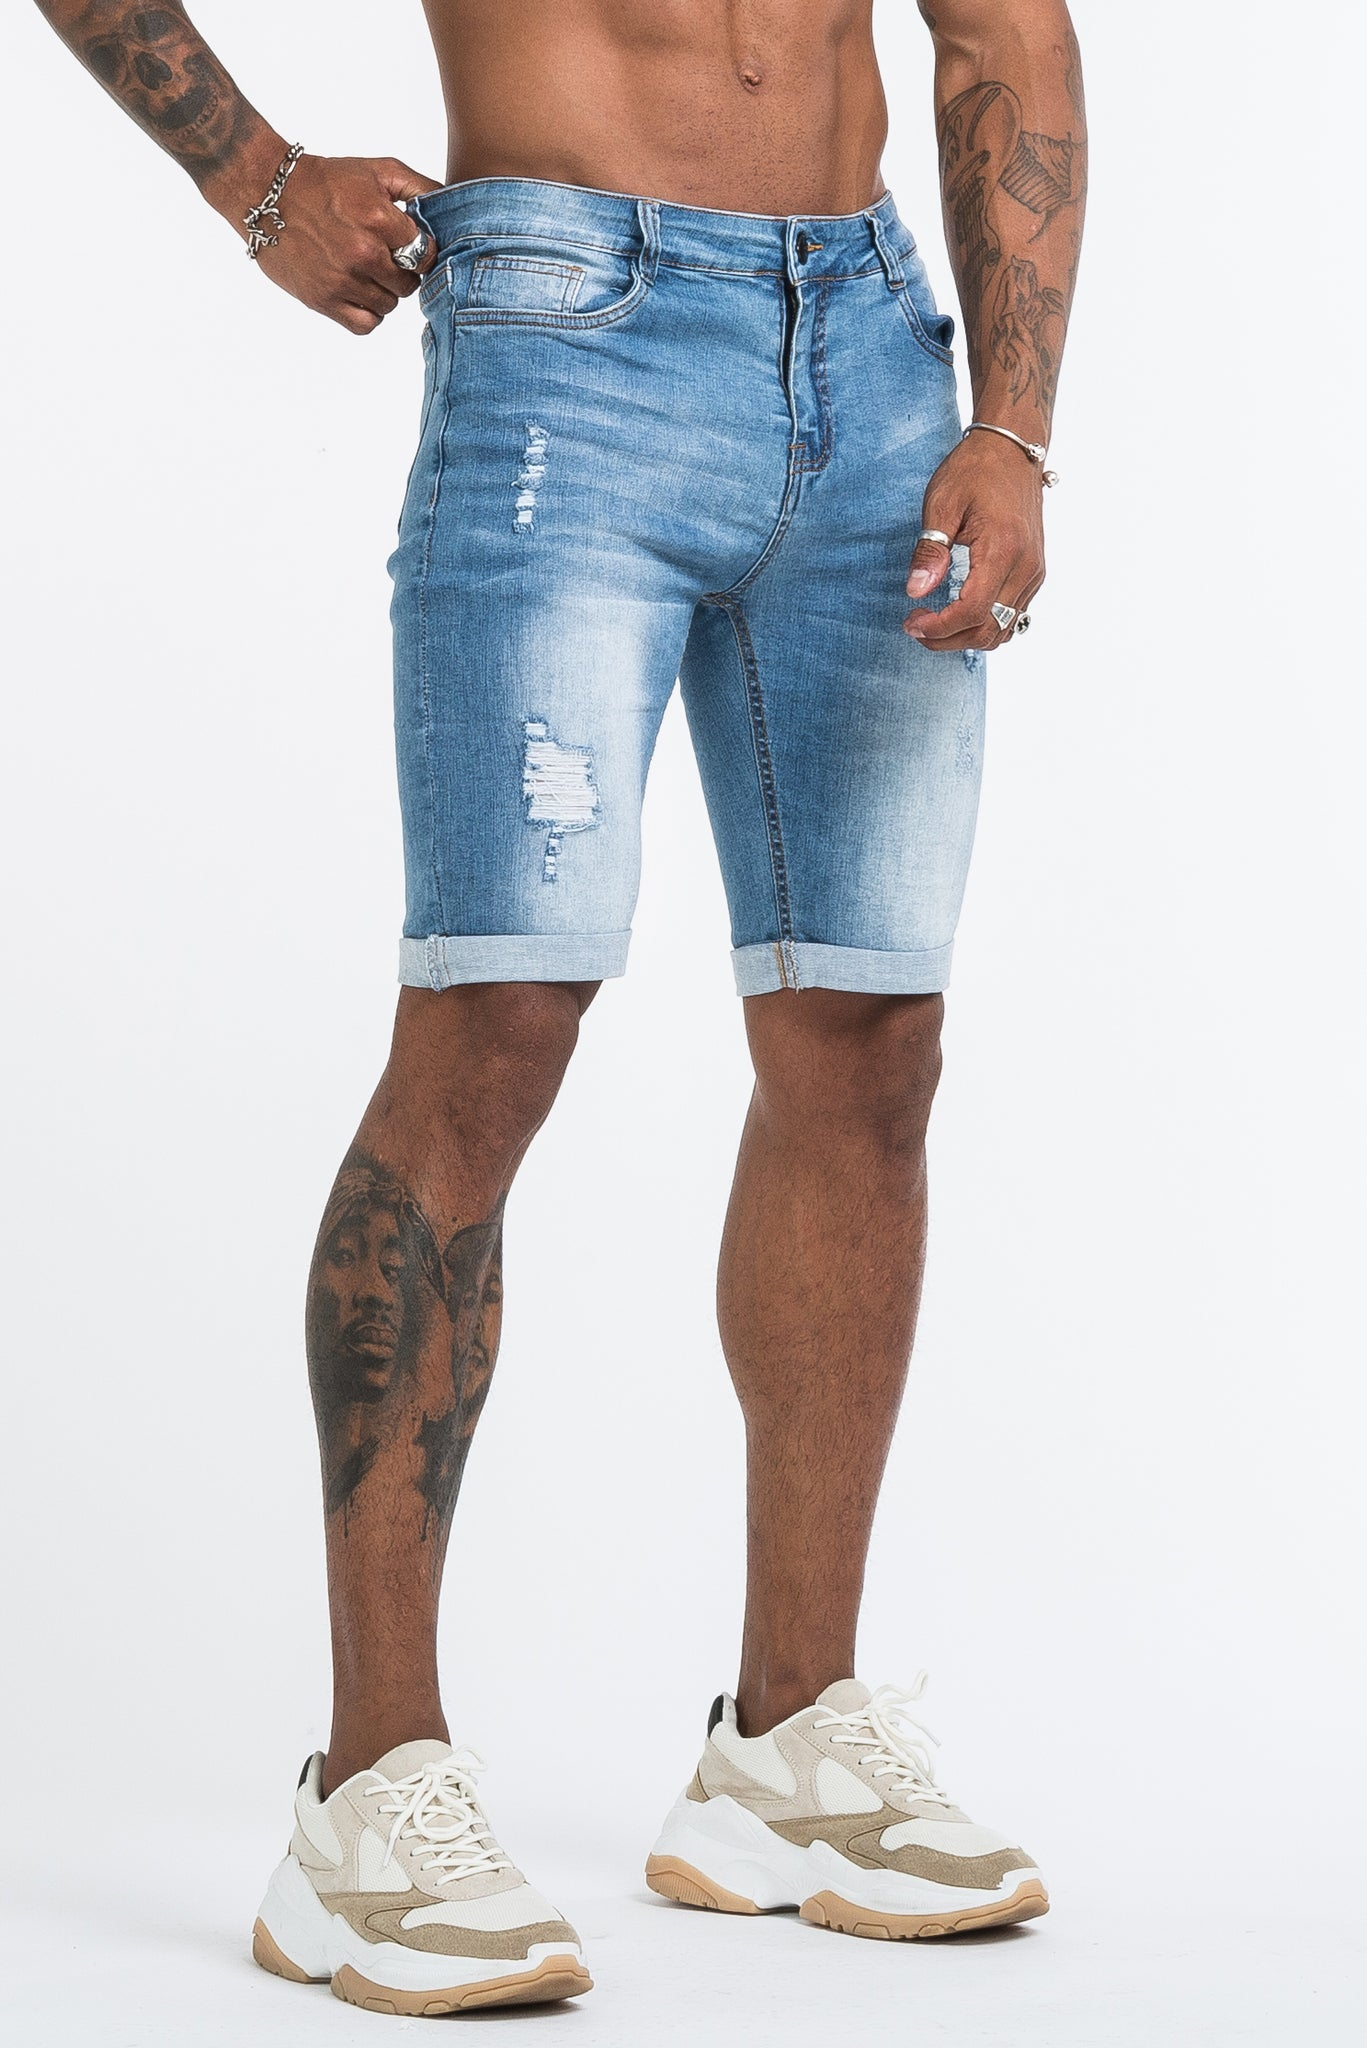 THE MEDUSA SHORTS - LIGHT BLUE